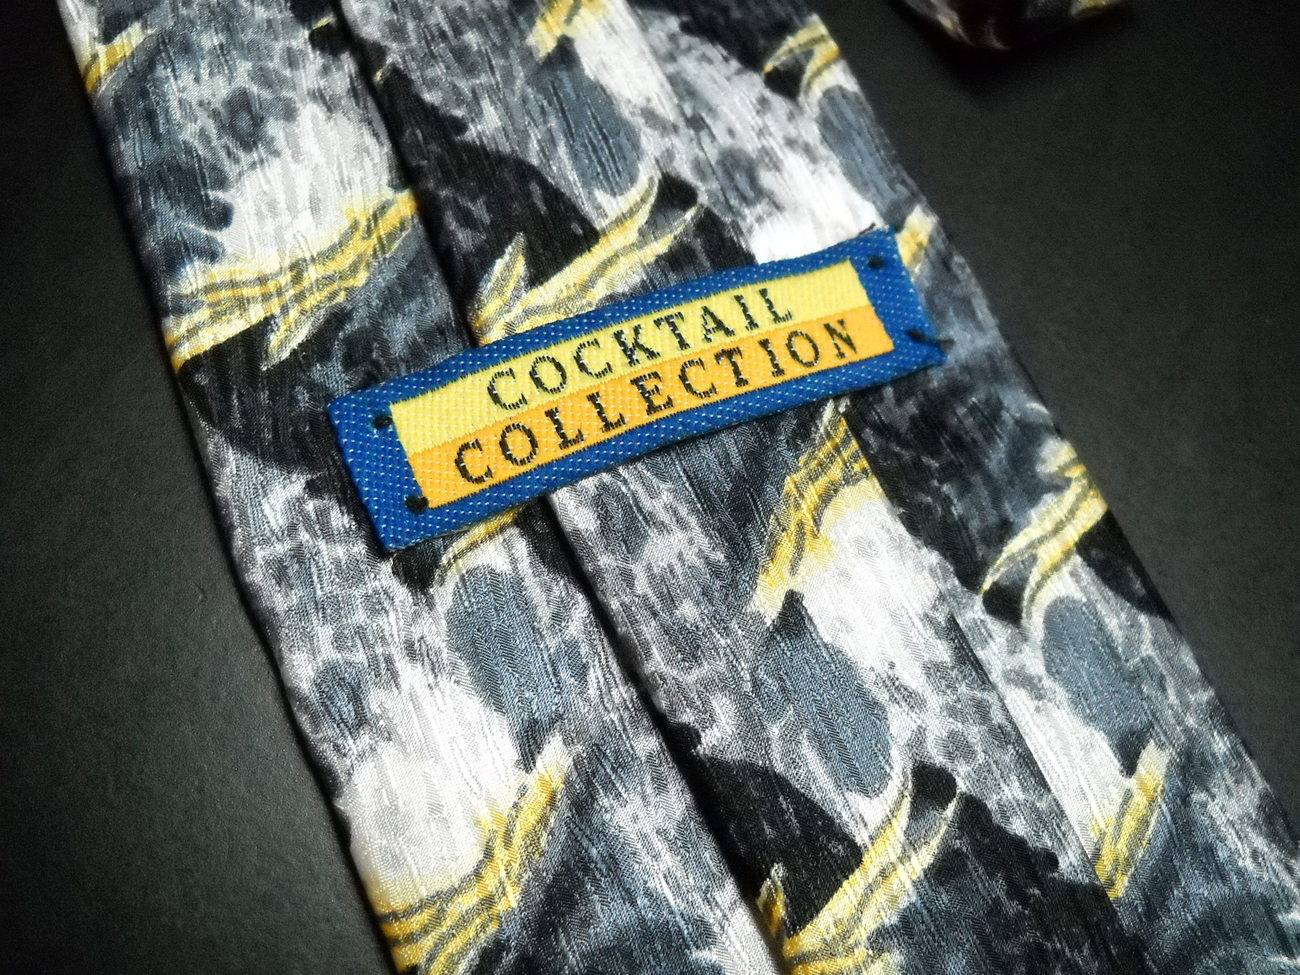 Stonehenge Cocktail Collection Neck Tie Waves of Grays Golds Black Untitled